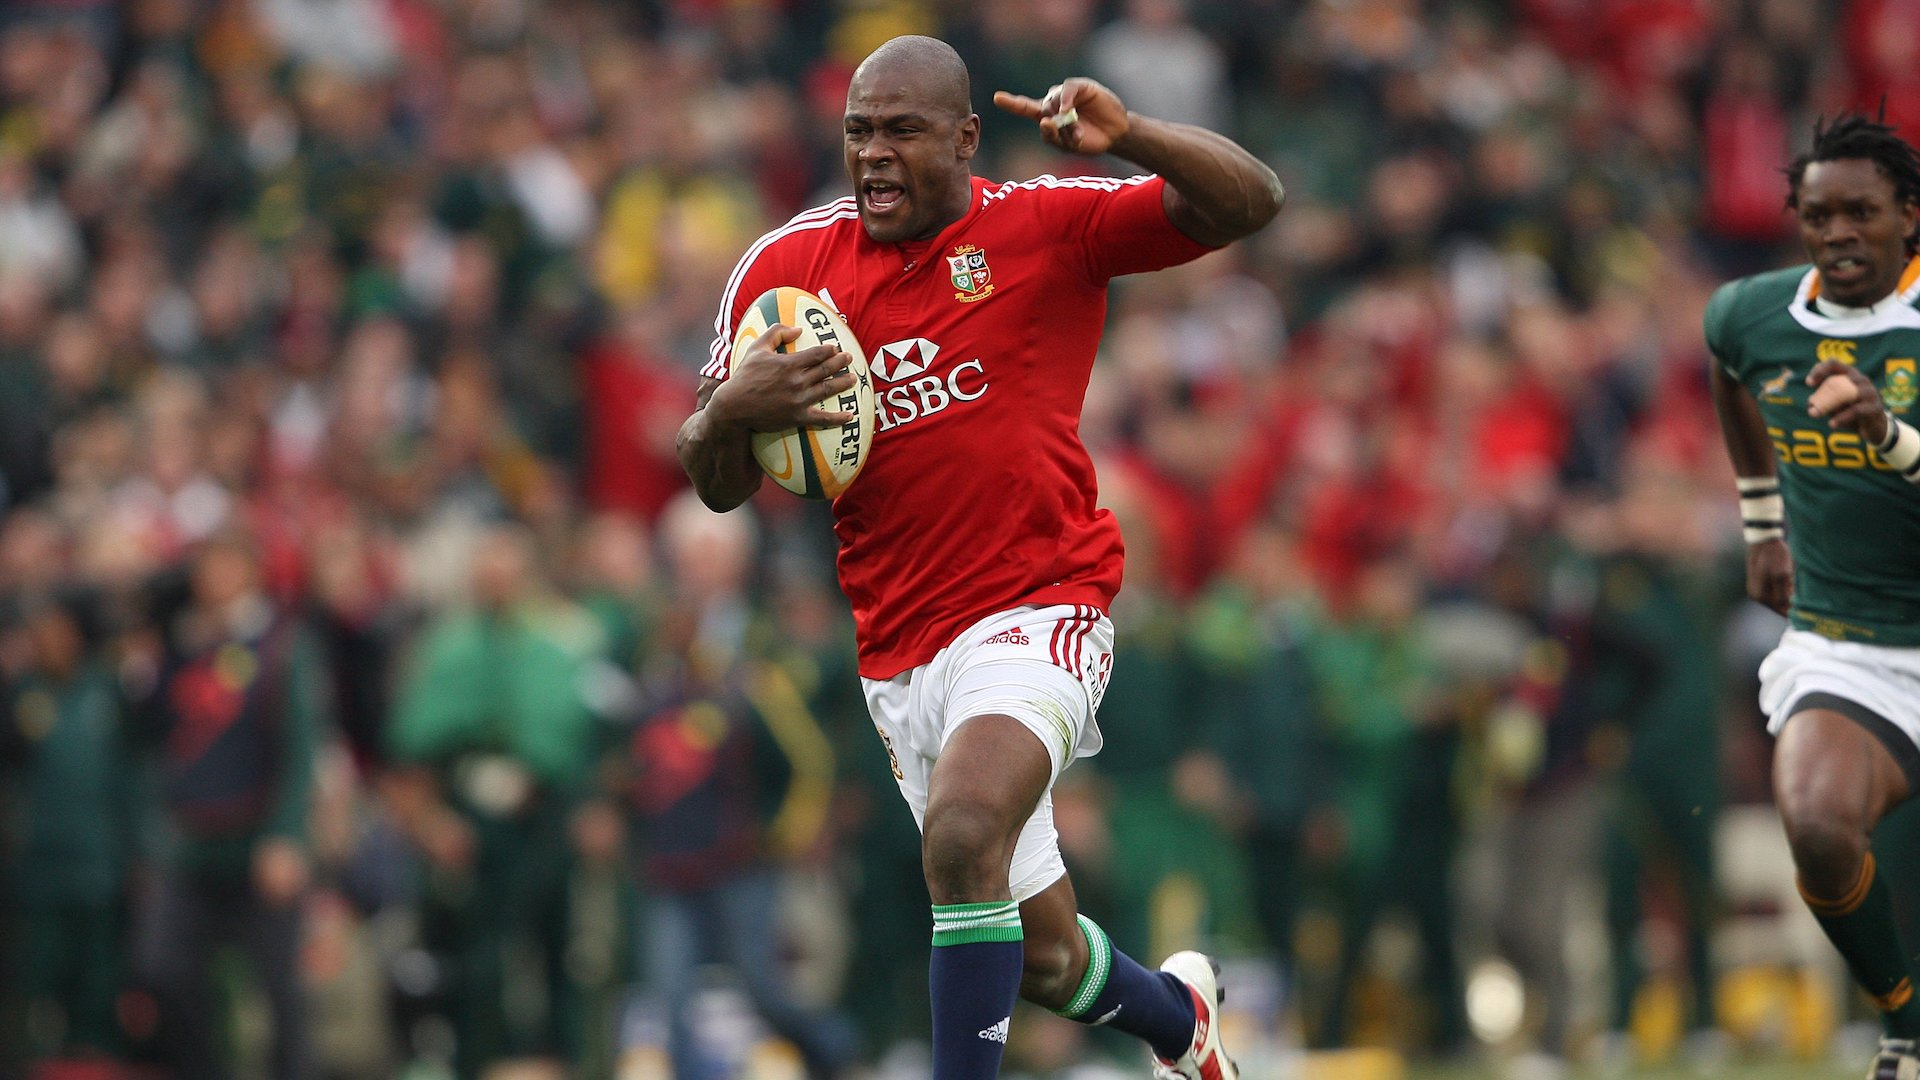 Ugo Monye goes in to score the lions 3rd try after an intercept